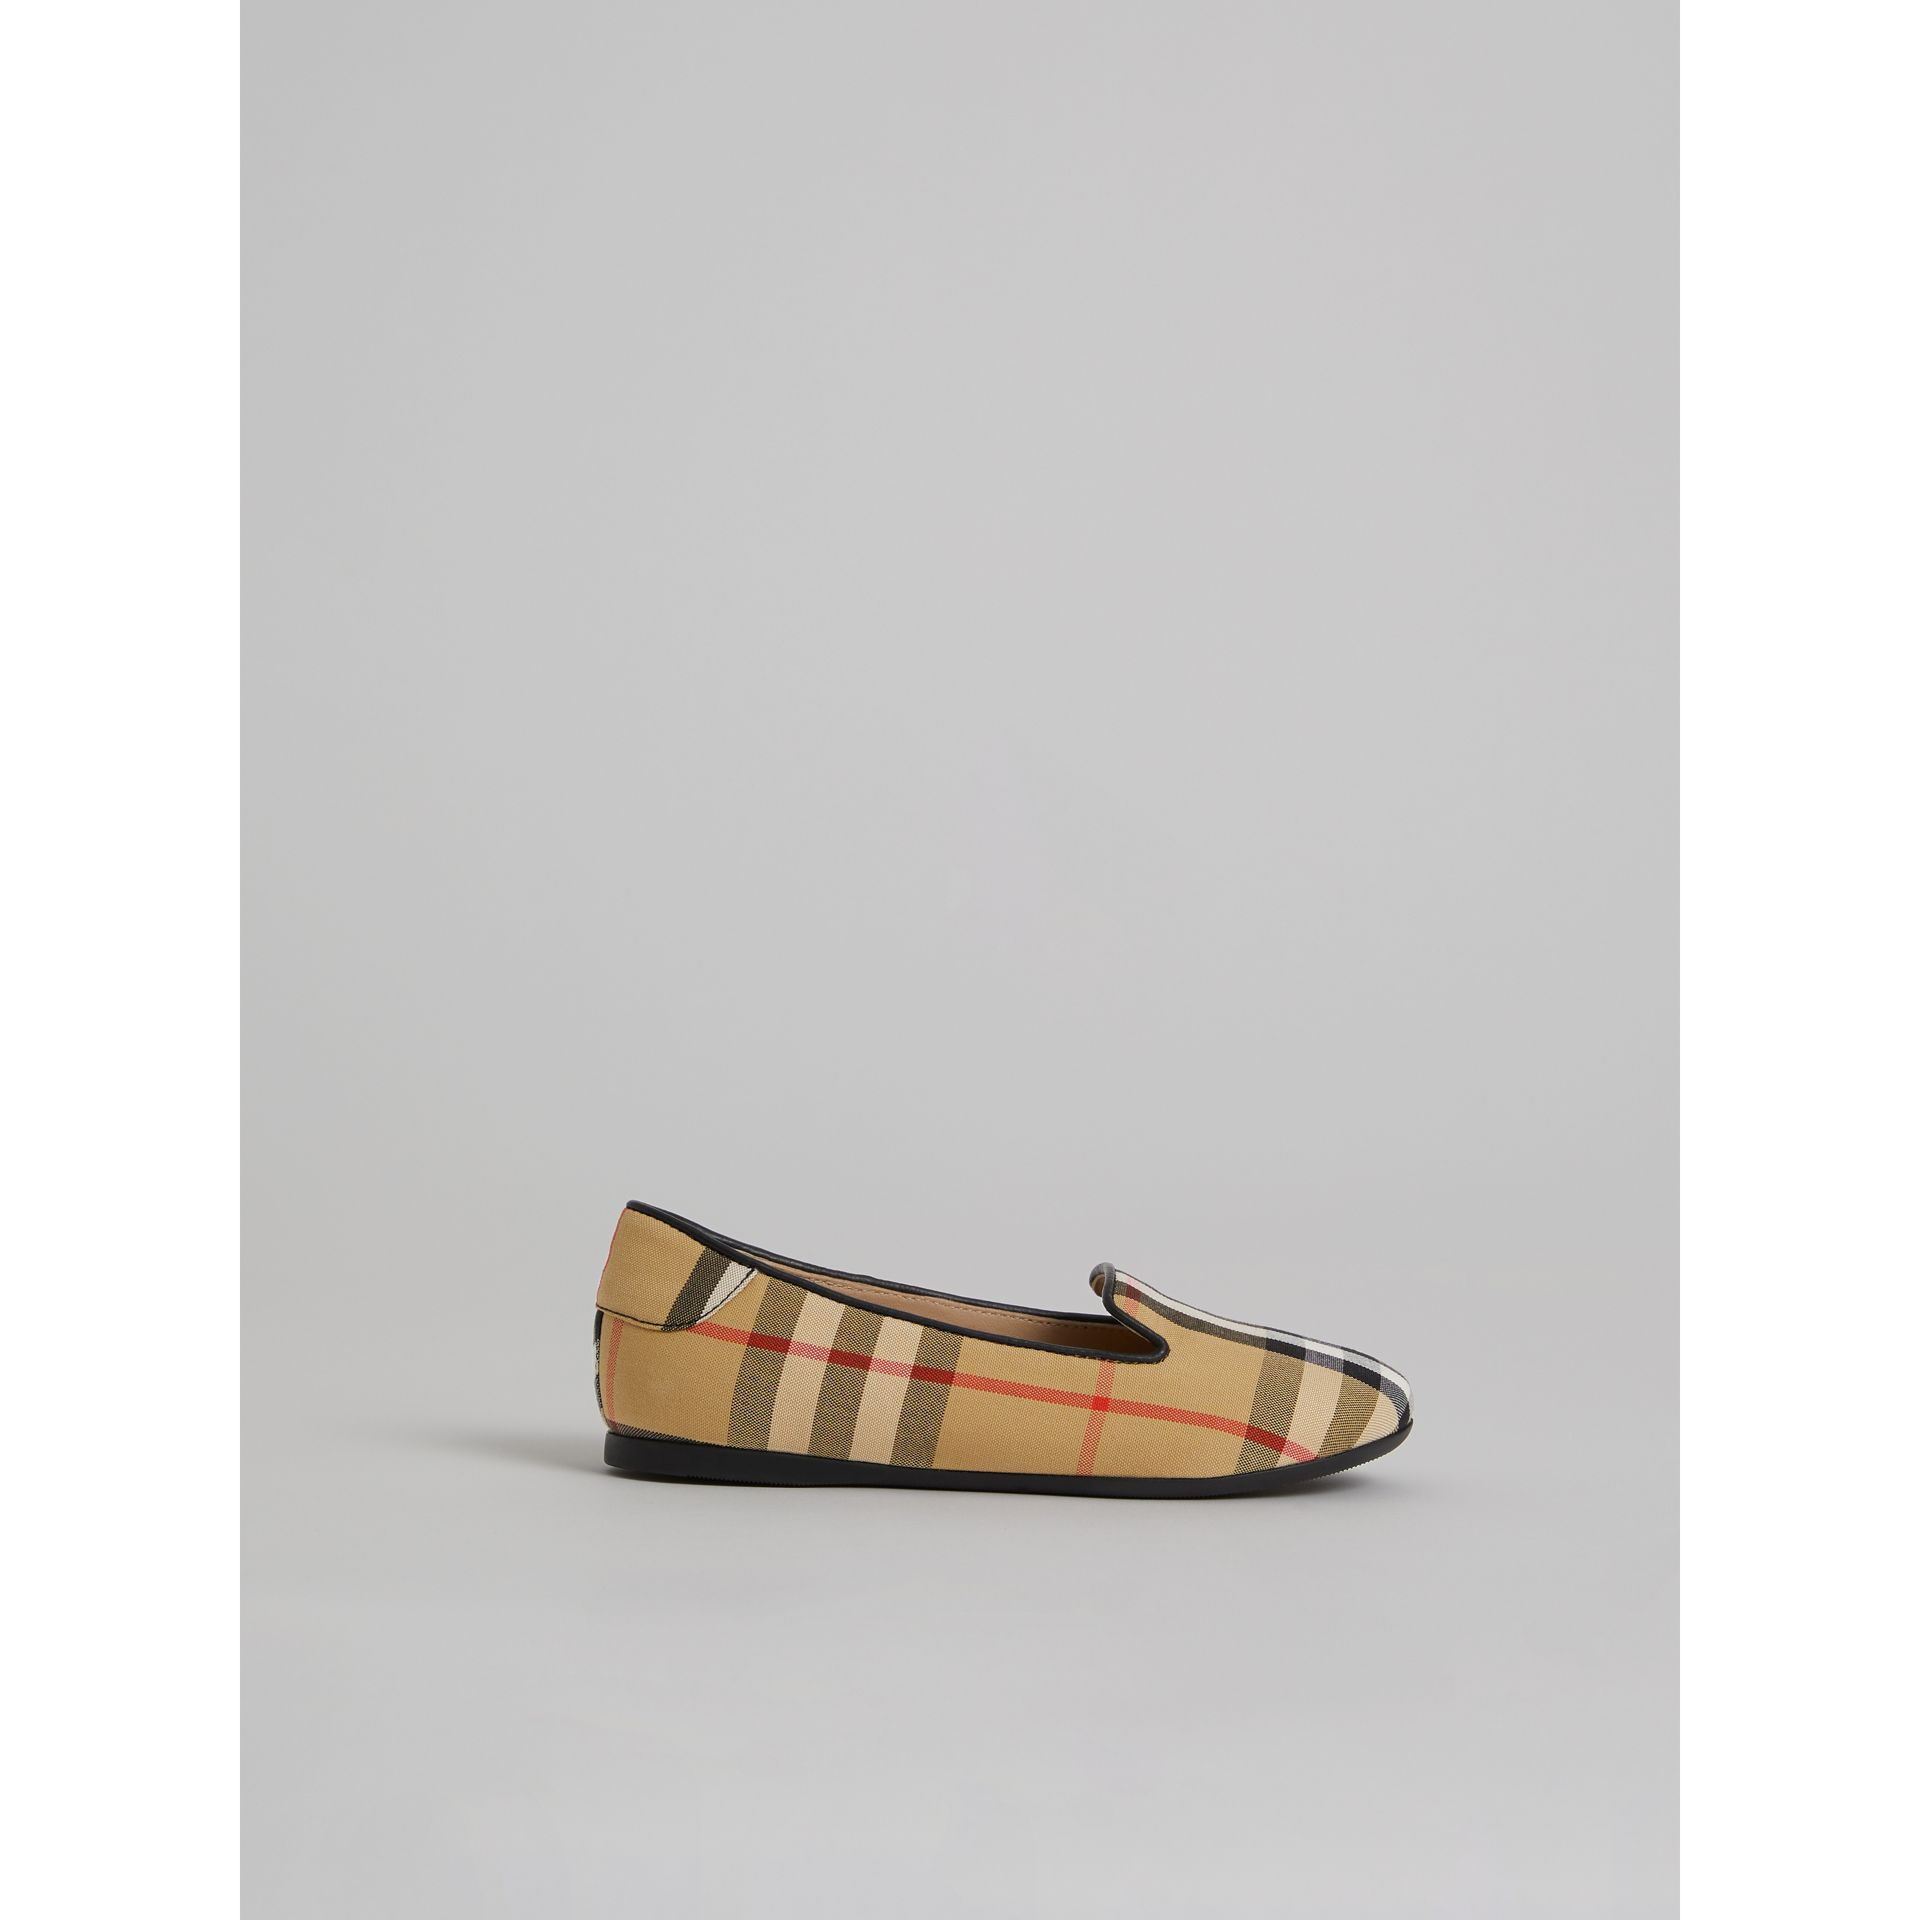 Slipper im Vintage Check-Design (Antikgelb) | Burberry - Galerie-Bild 3